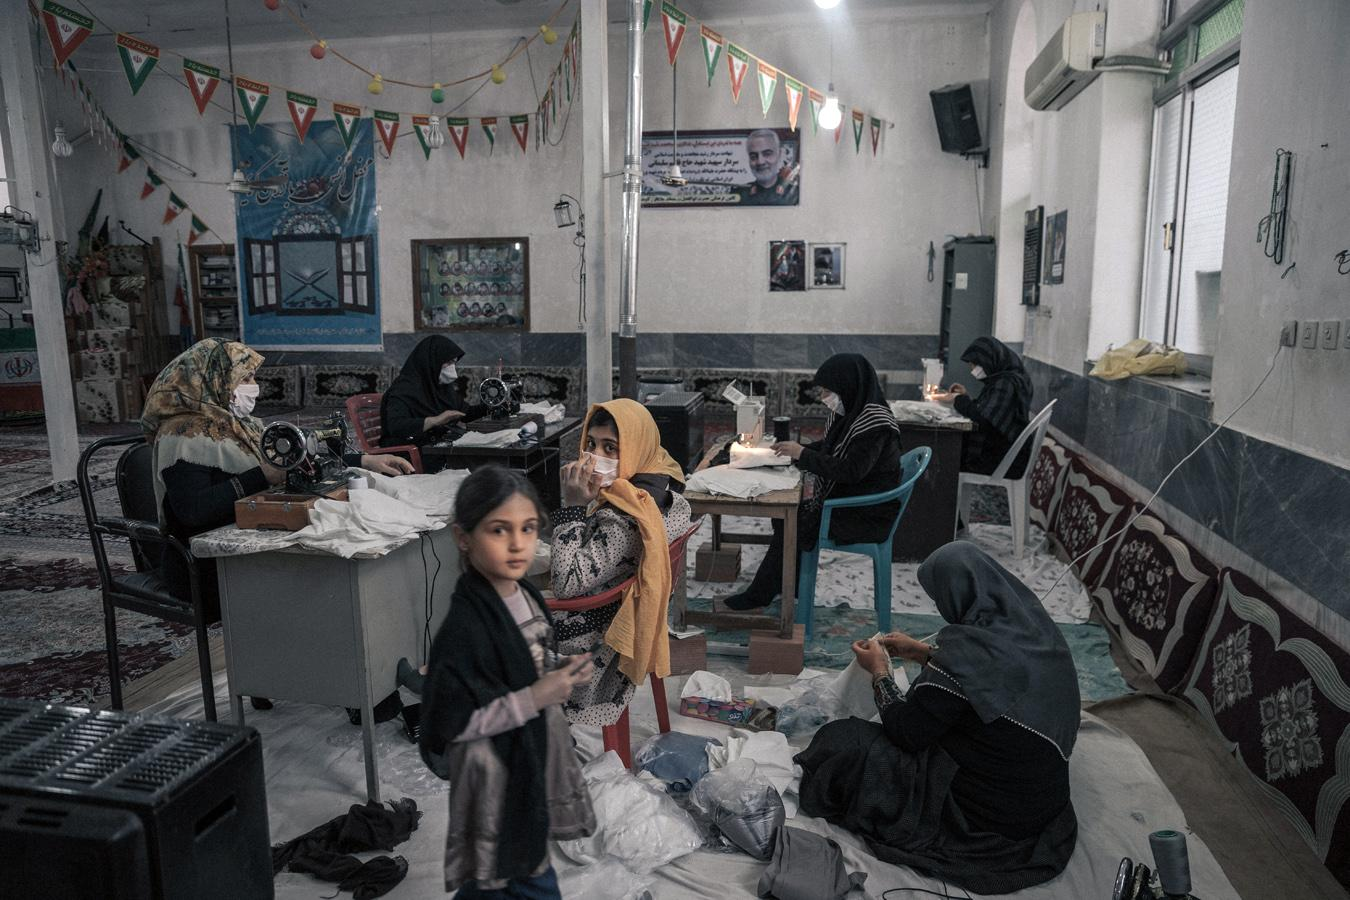 Volunteer women are gathered at the mosques and sewing. Due to the rapid expansion of the coronavirus, the shortage of medical equipment, for example, masks and covers, made the situation worse. Somayeh Ahani, the supervisor of women, suffers from Fibromyalgia. One of the tailor women said during the war we used to gather at the mosque to help people and this pandemic situation is similar to that (war period).